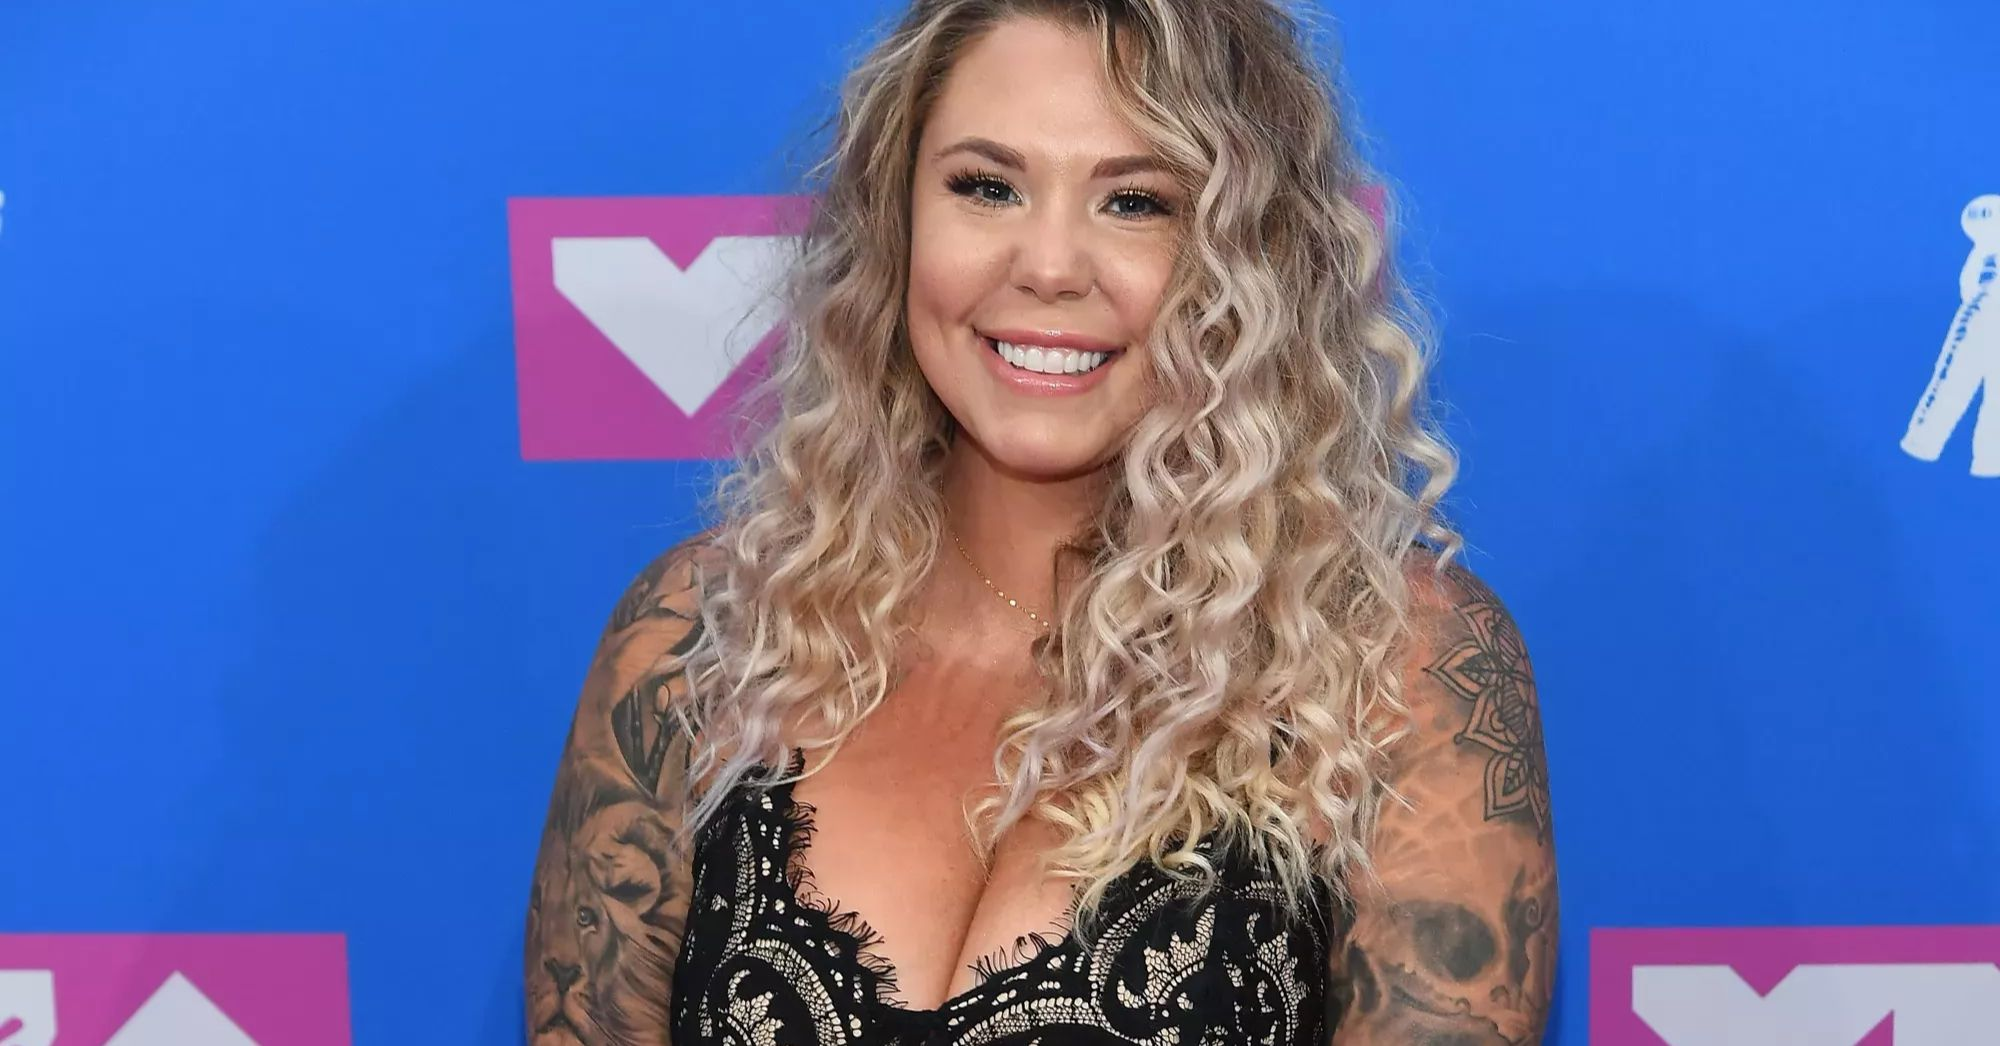 Qm5kSVhQaWxicHVPc3JZY1FzOVIuanBn Kailyn Lowry Shows Off Massive Baby Bump In Bikini From Her Bathroom 8211 The Blast